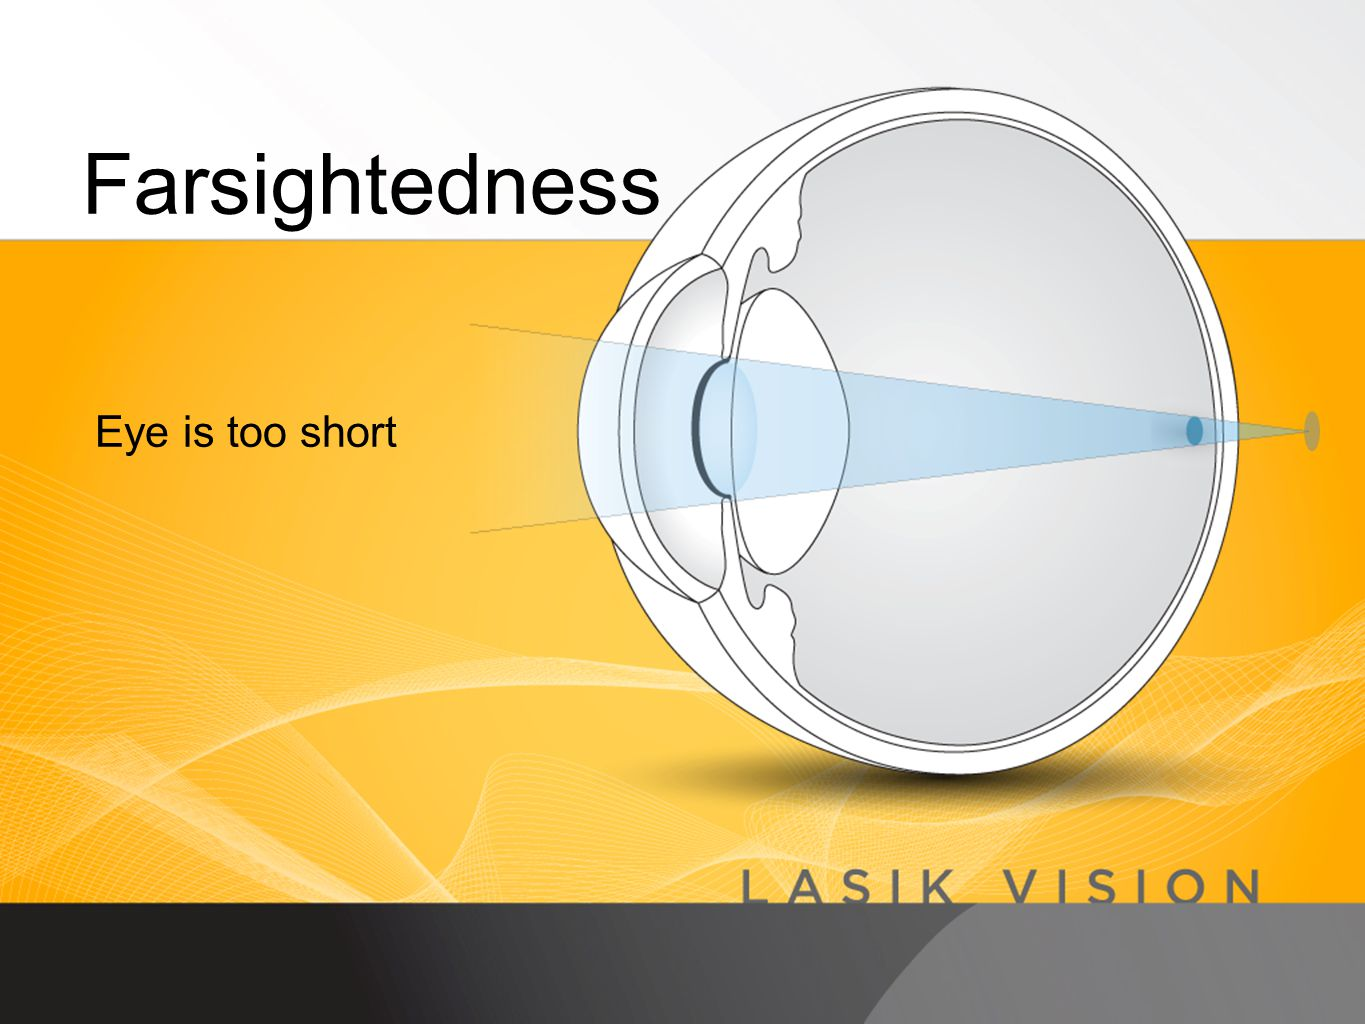 Farsightedness Eye is too short